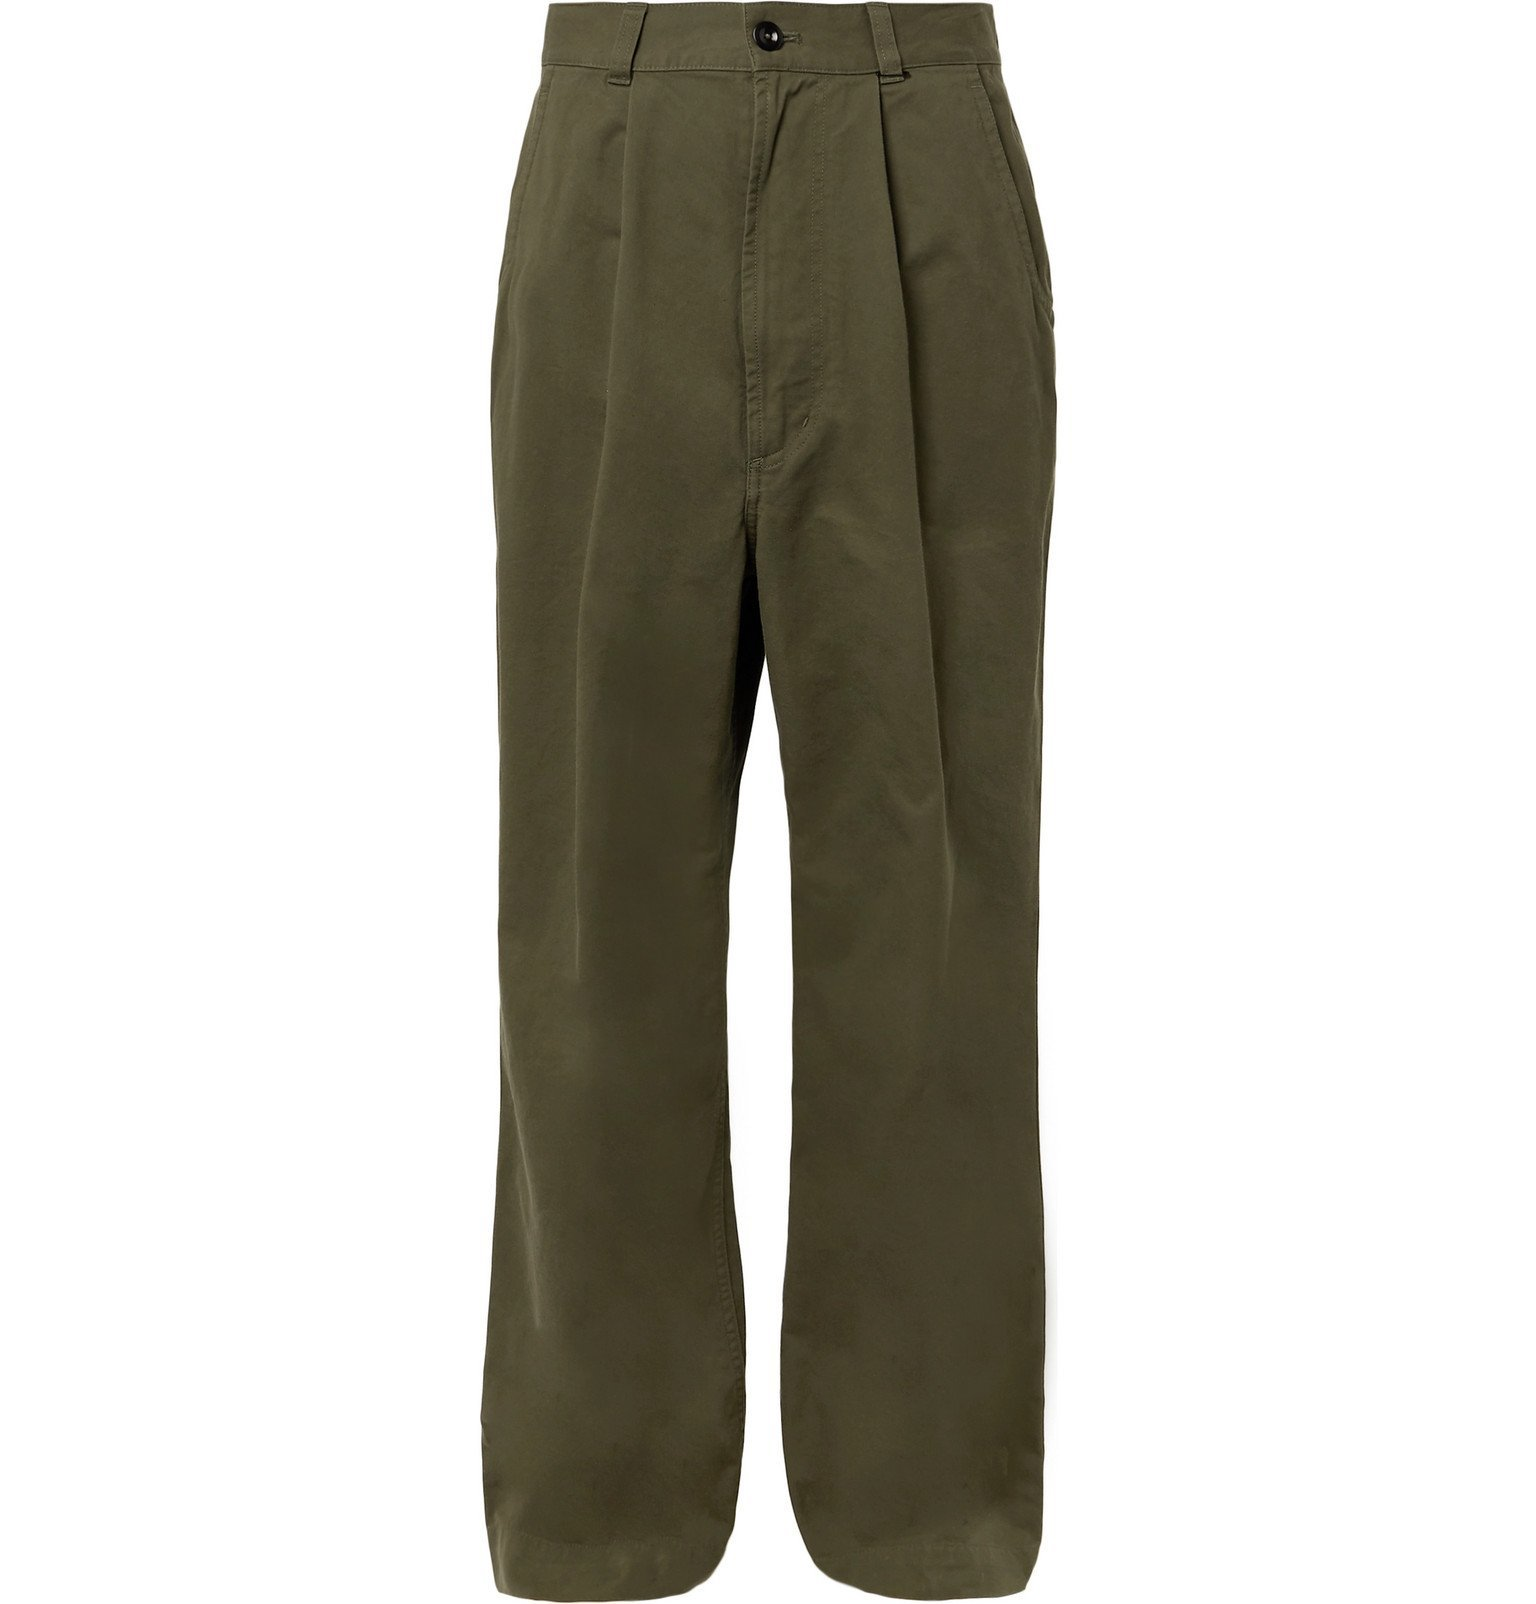 Margaret Howell - MHL Pleated Cotton-Drill Trousers - Green